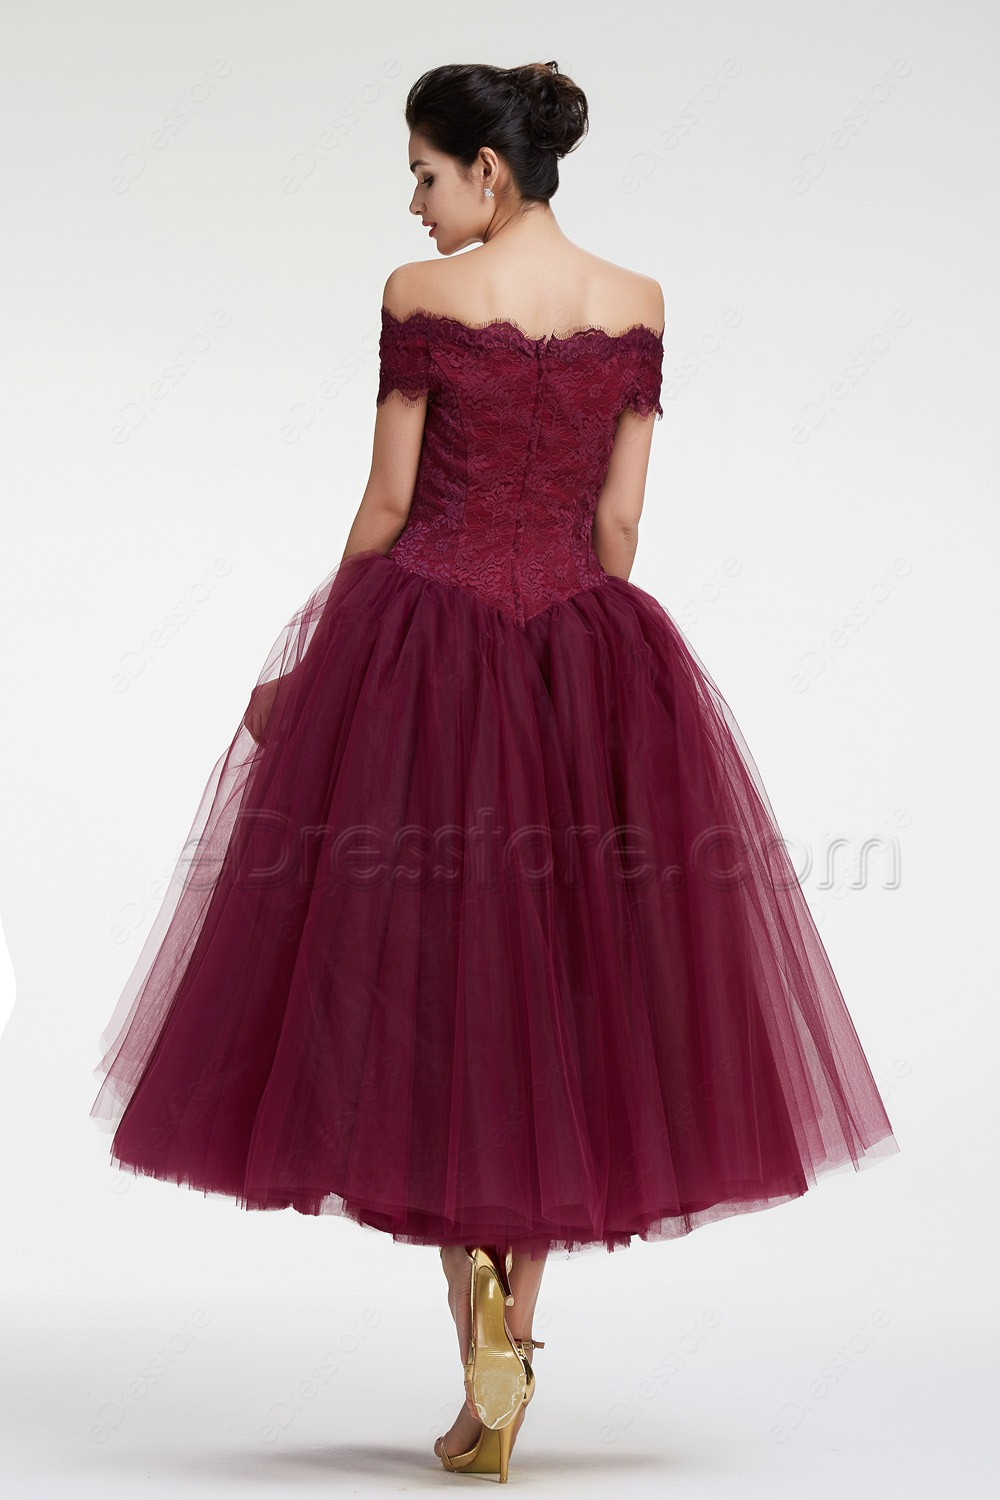 Burgundy Off the Shoulder Ball Gown VIntage Prom Dresses Tea Length